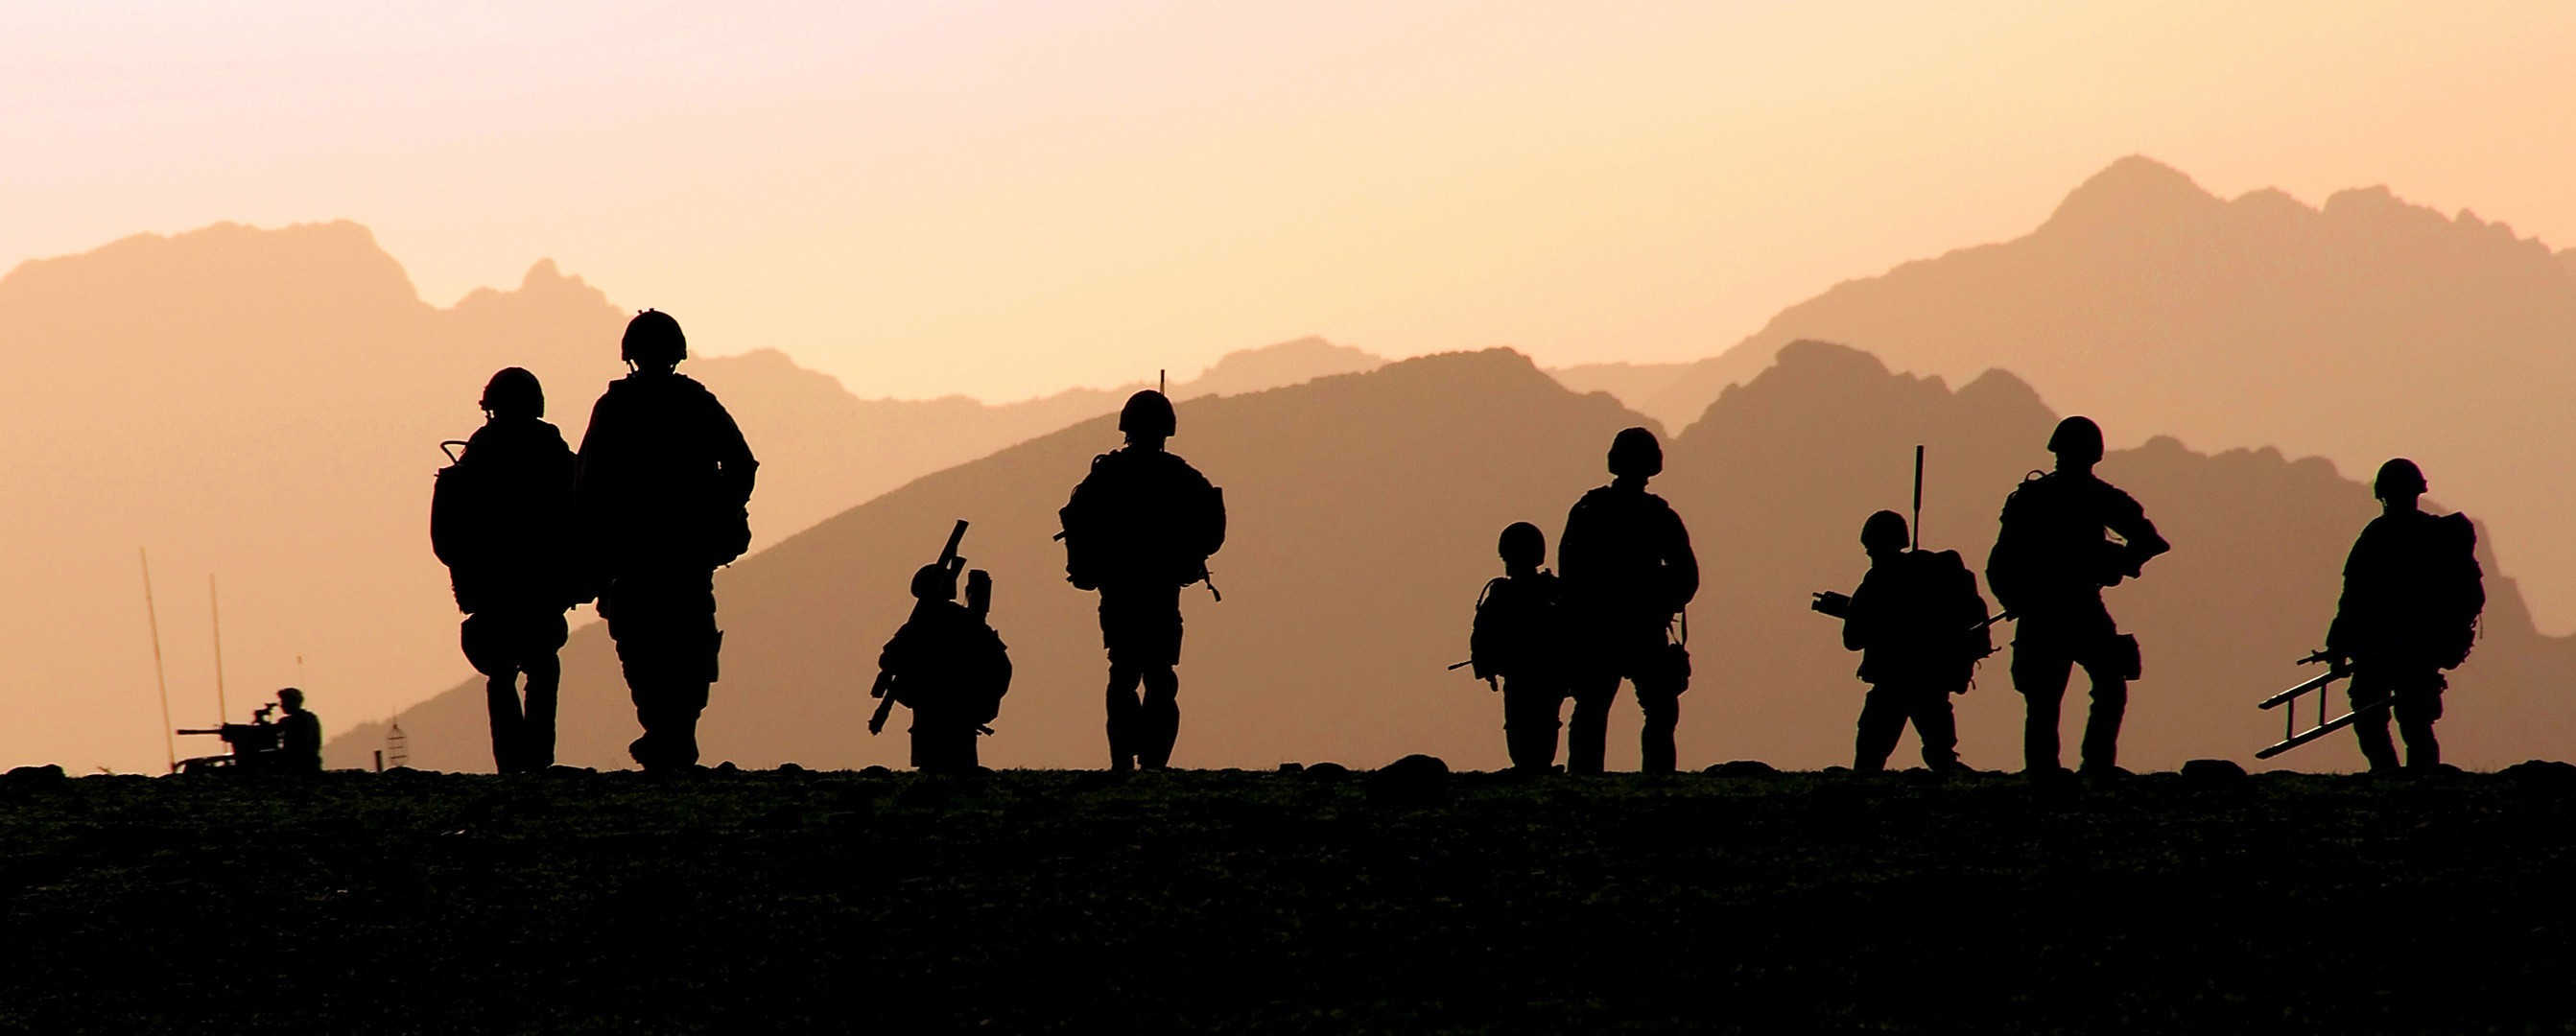 military, Silhouette, Royal Marines Wallpapers HD / Desktop and Mobile  Backgrounds